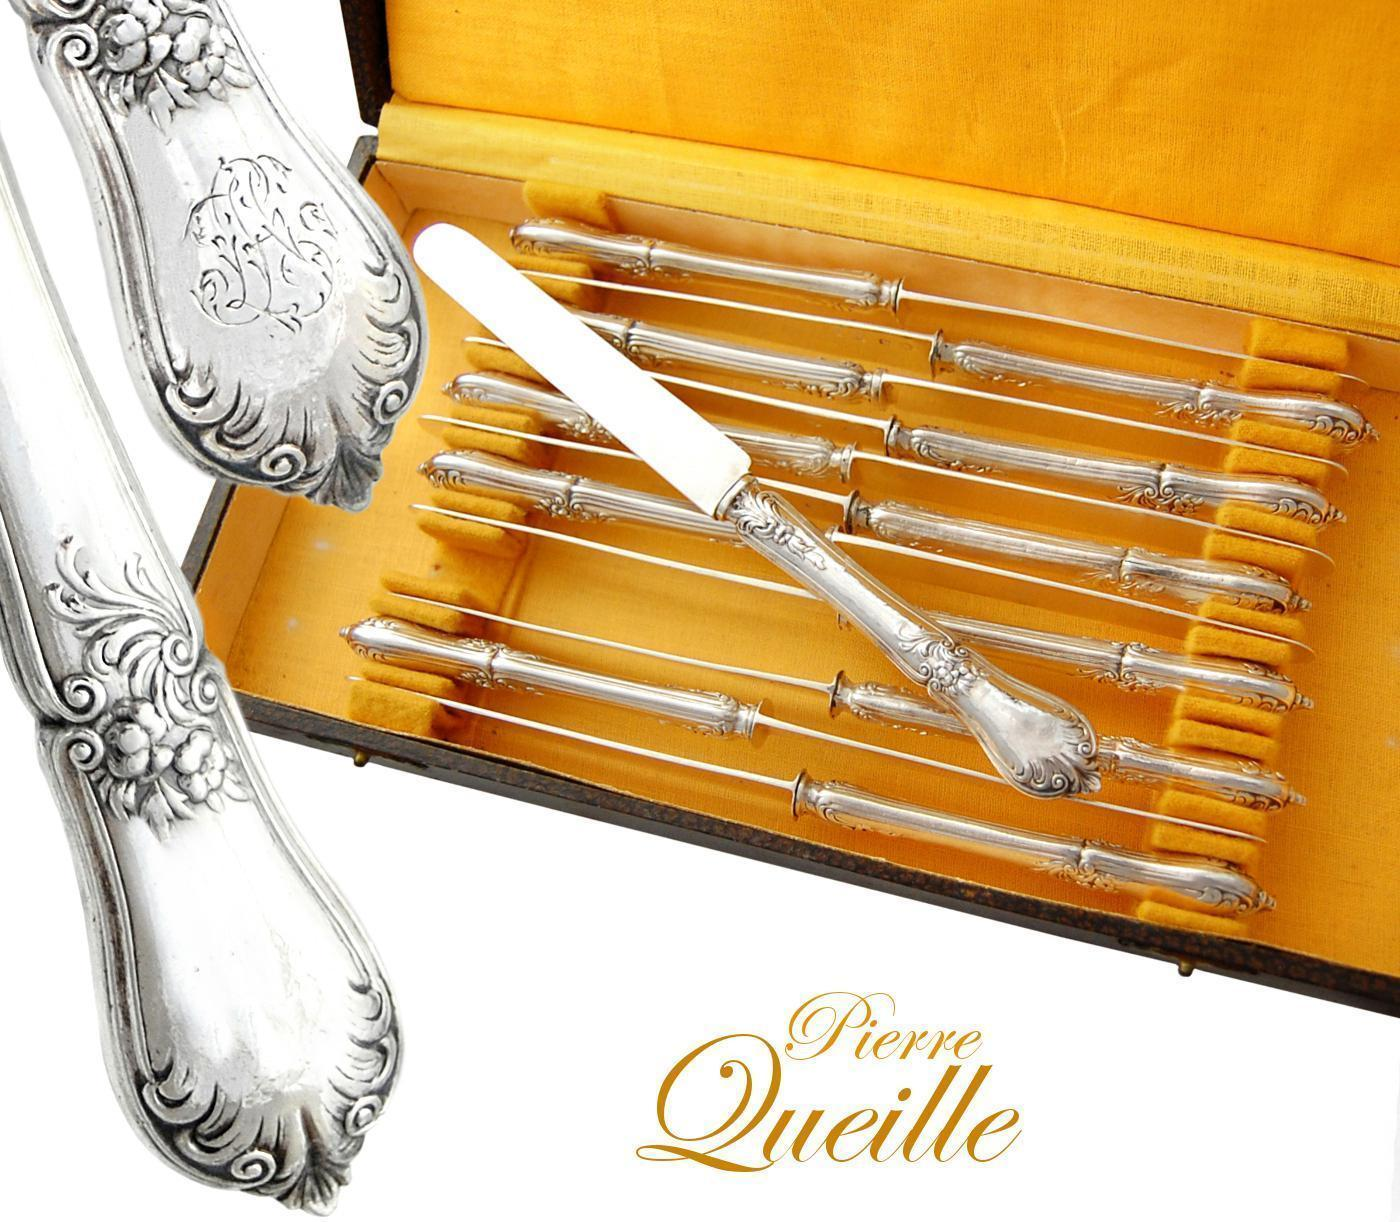 Boxed French Sterling Silver Dessert 12pc Knife Set From